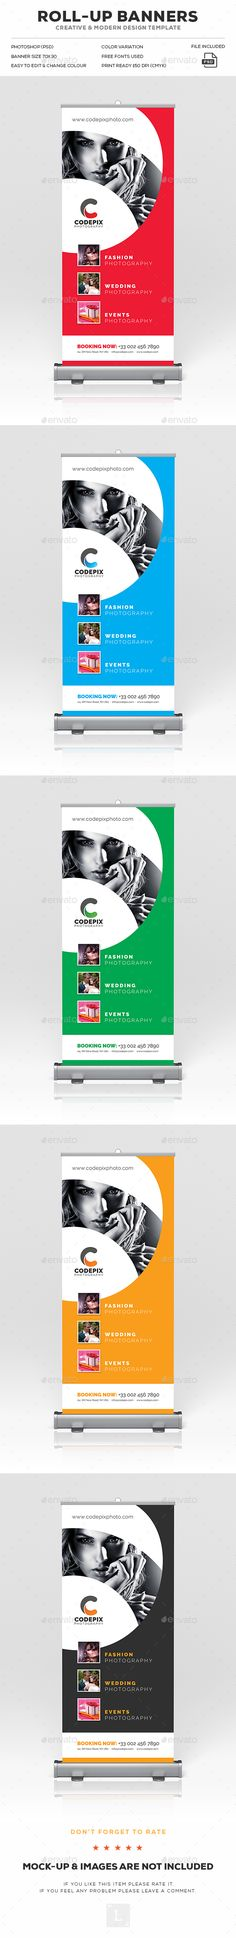 Photography Roll-Up Banner Template PSD. Download here: https://graphicriver.net/item/photography-rollup-banner/17050263?ref=ksioks